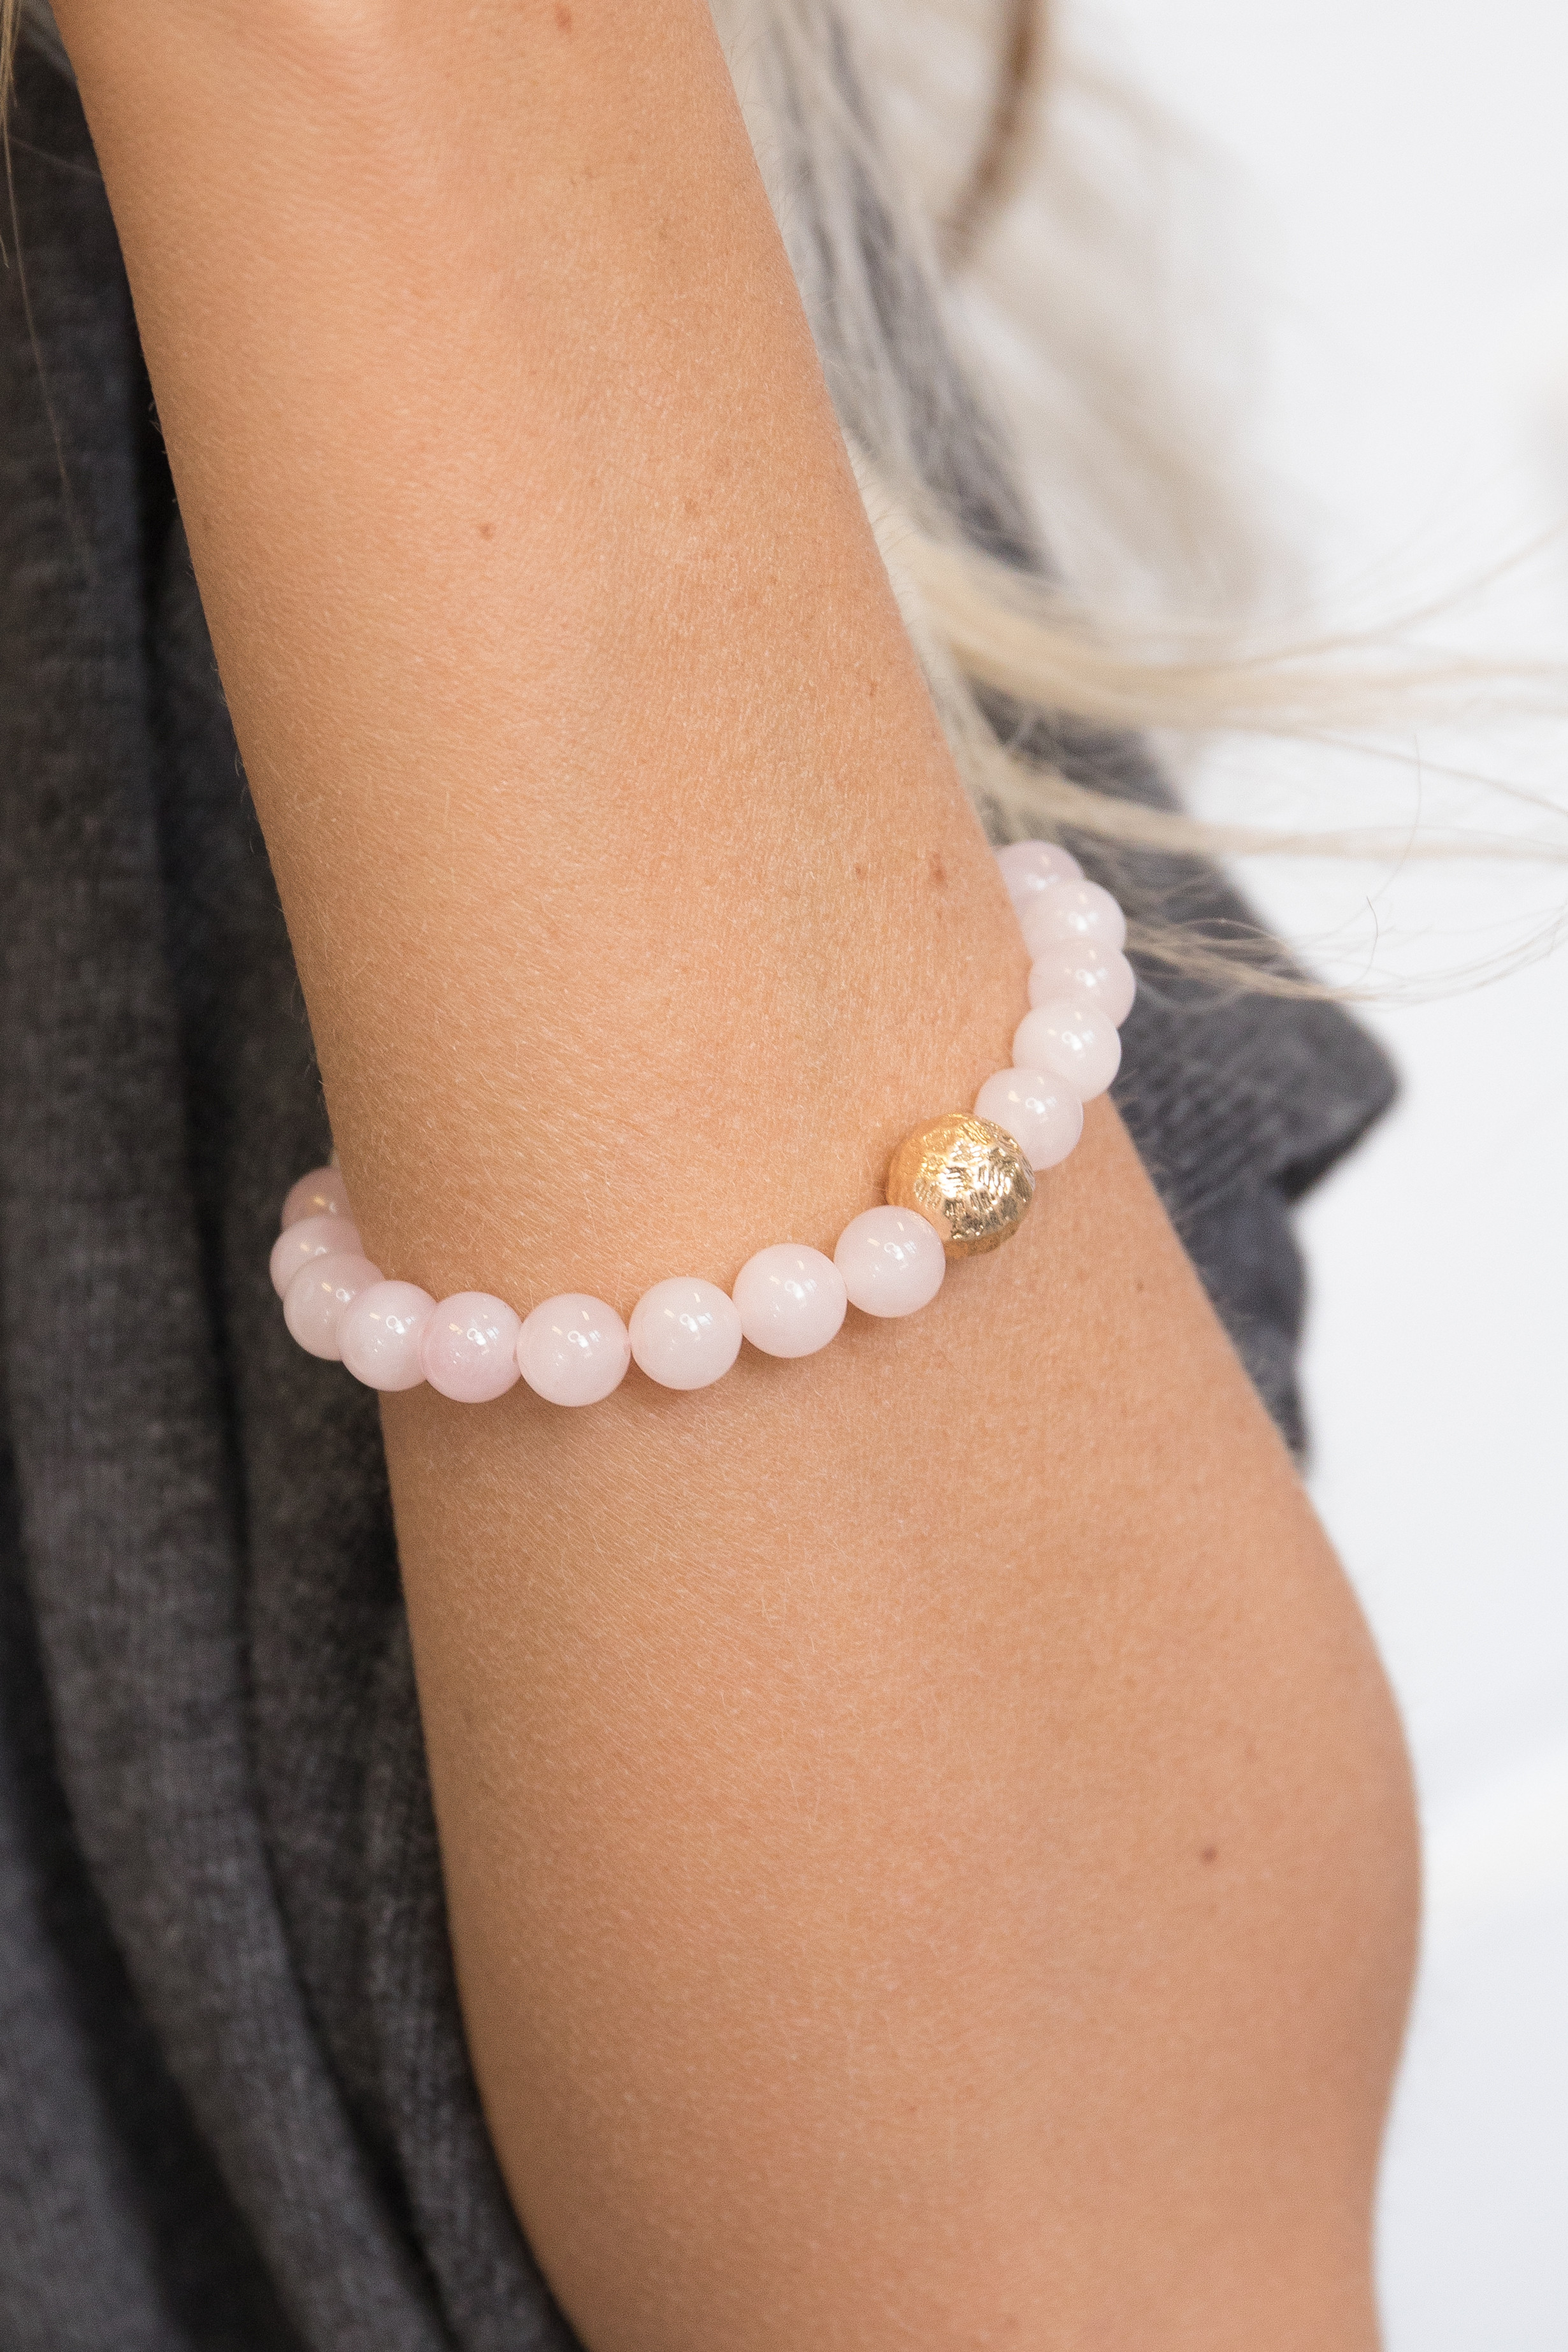 Light Pink Beaded Bracelet with Gold Accent Bead